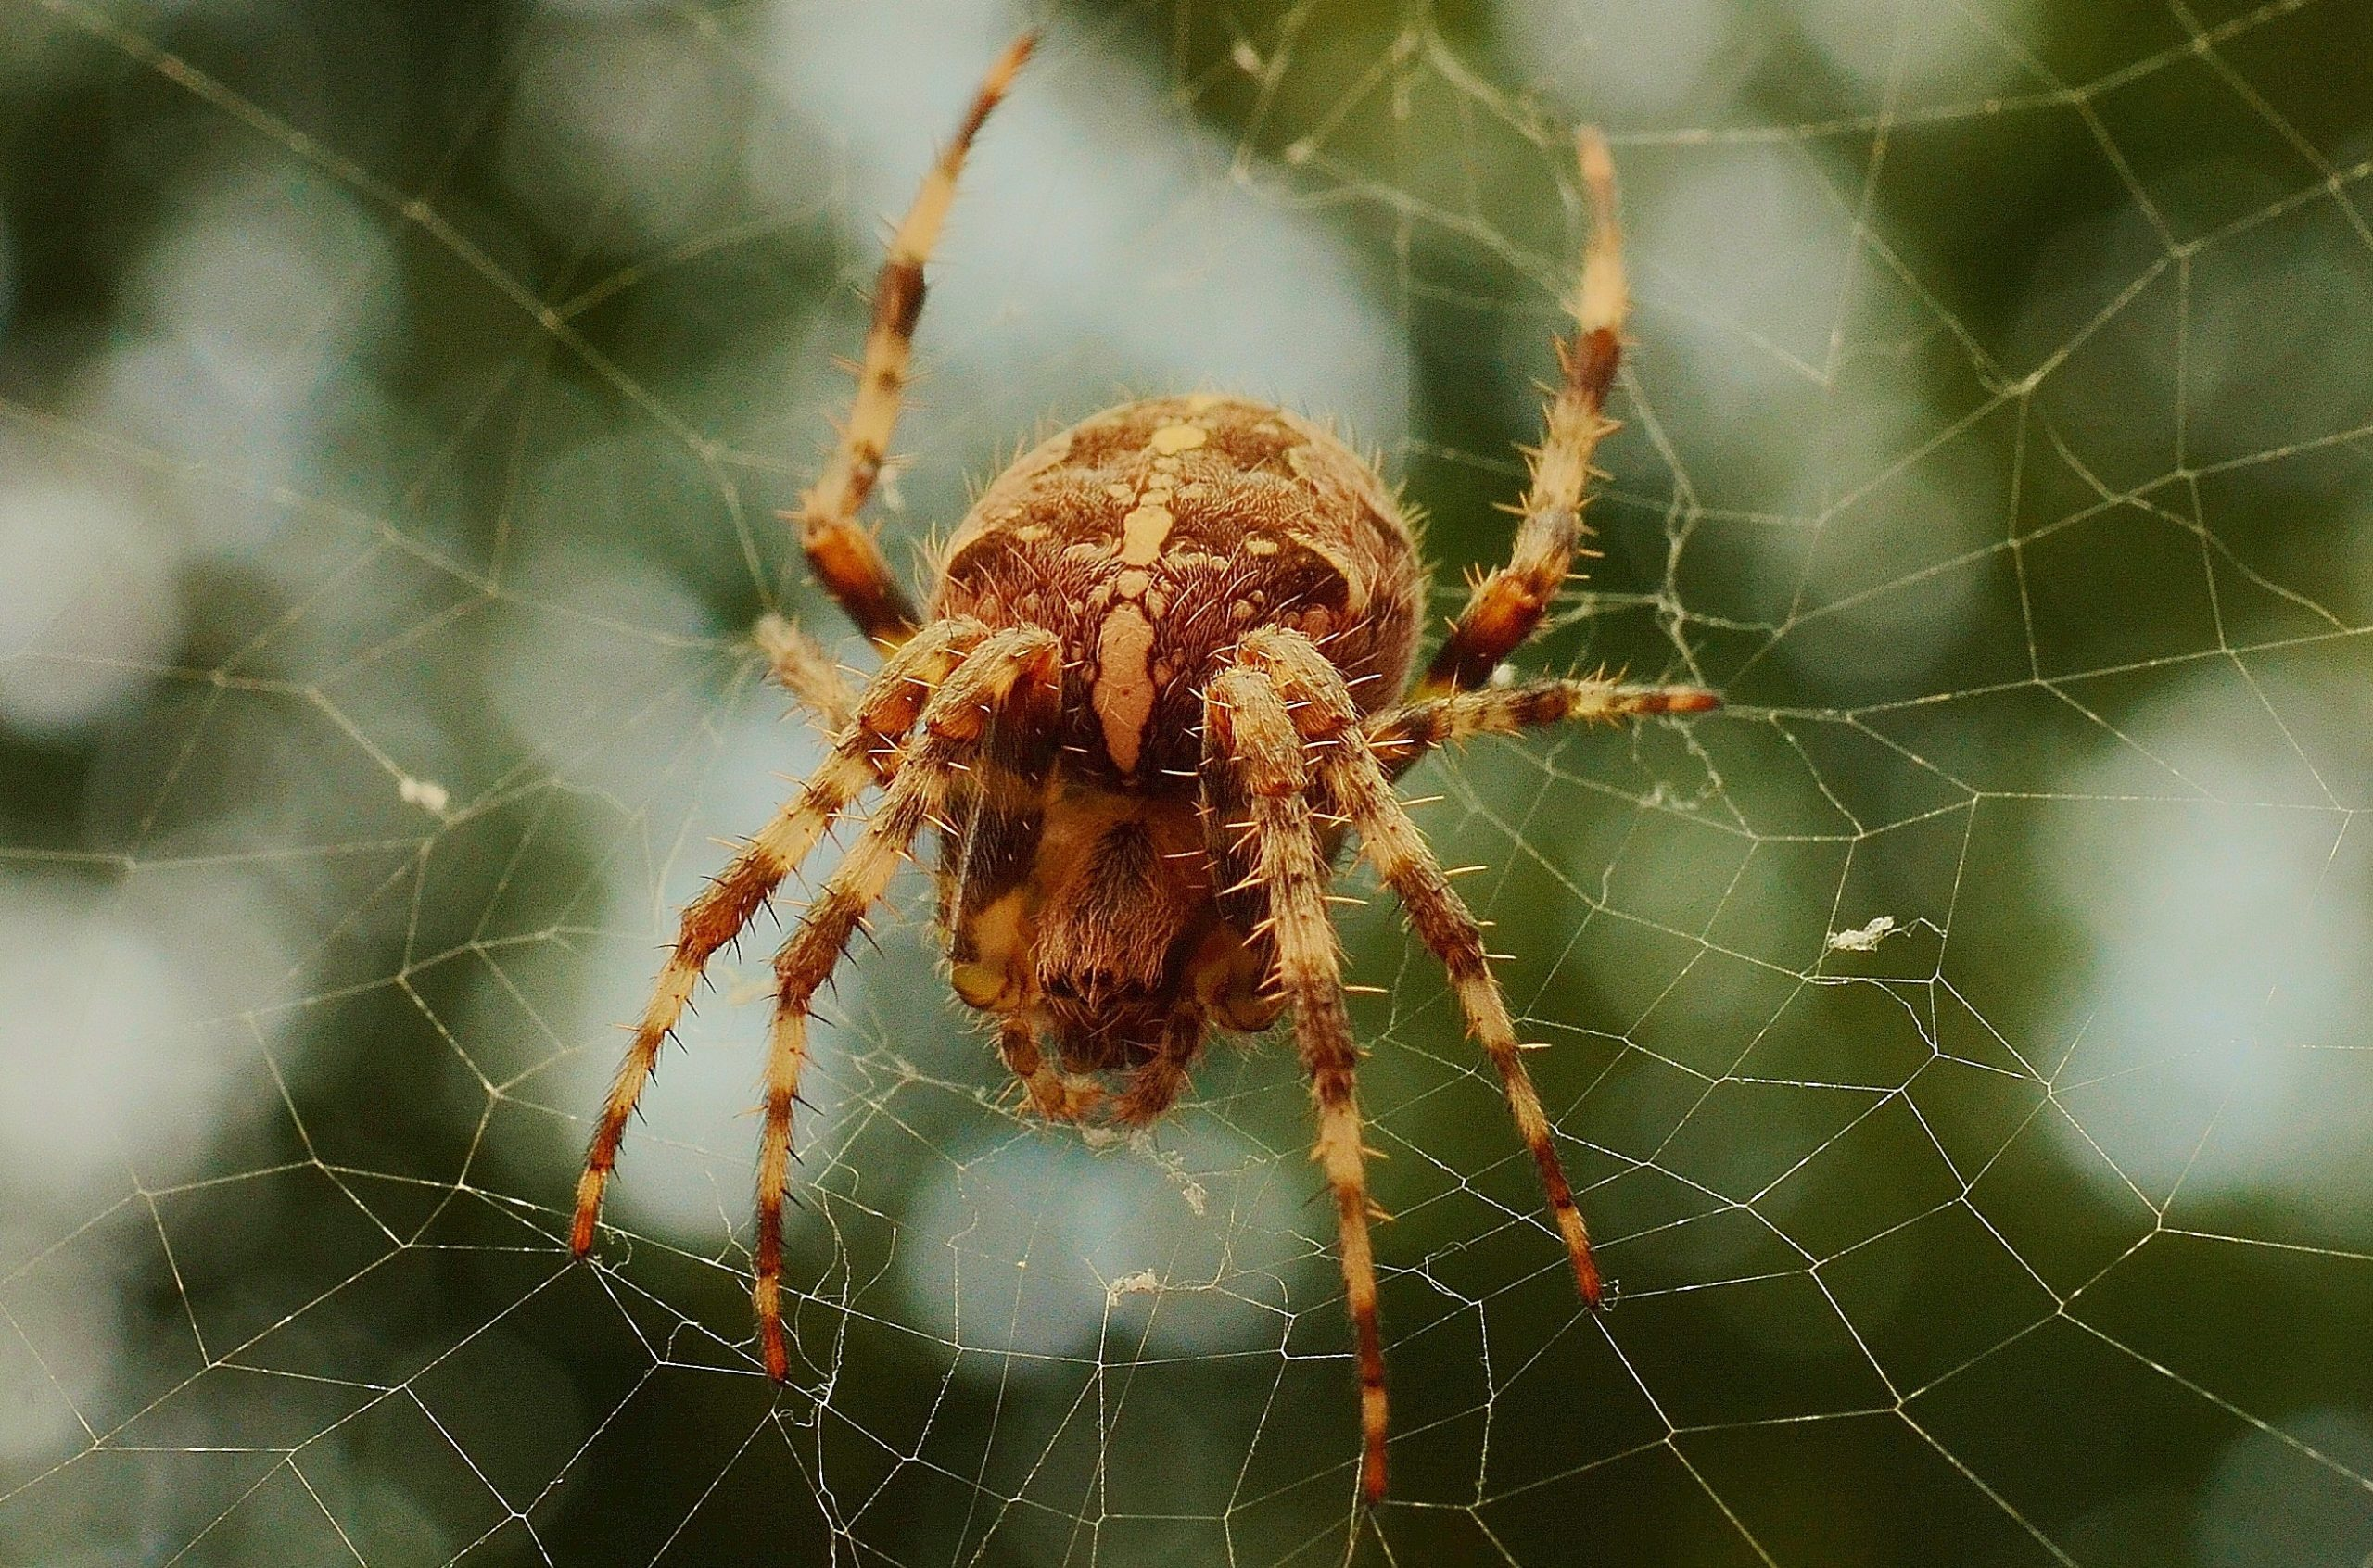 Barn spider life cycle - Image By Pexels